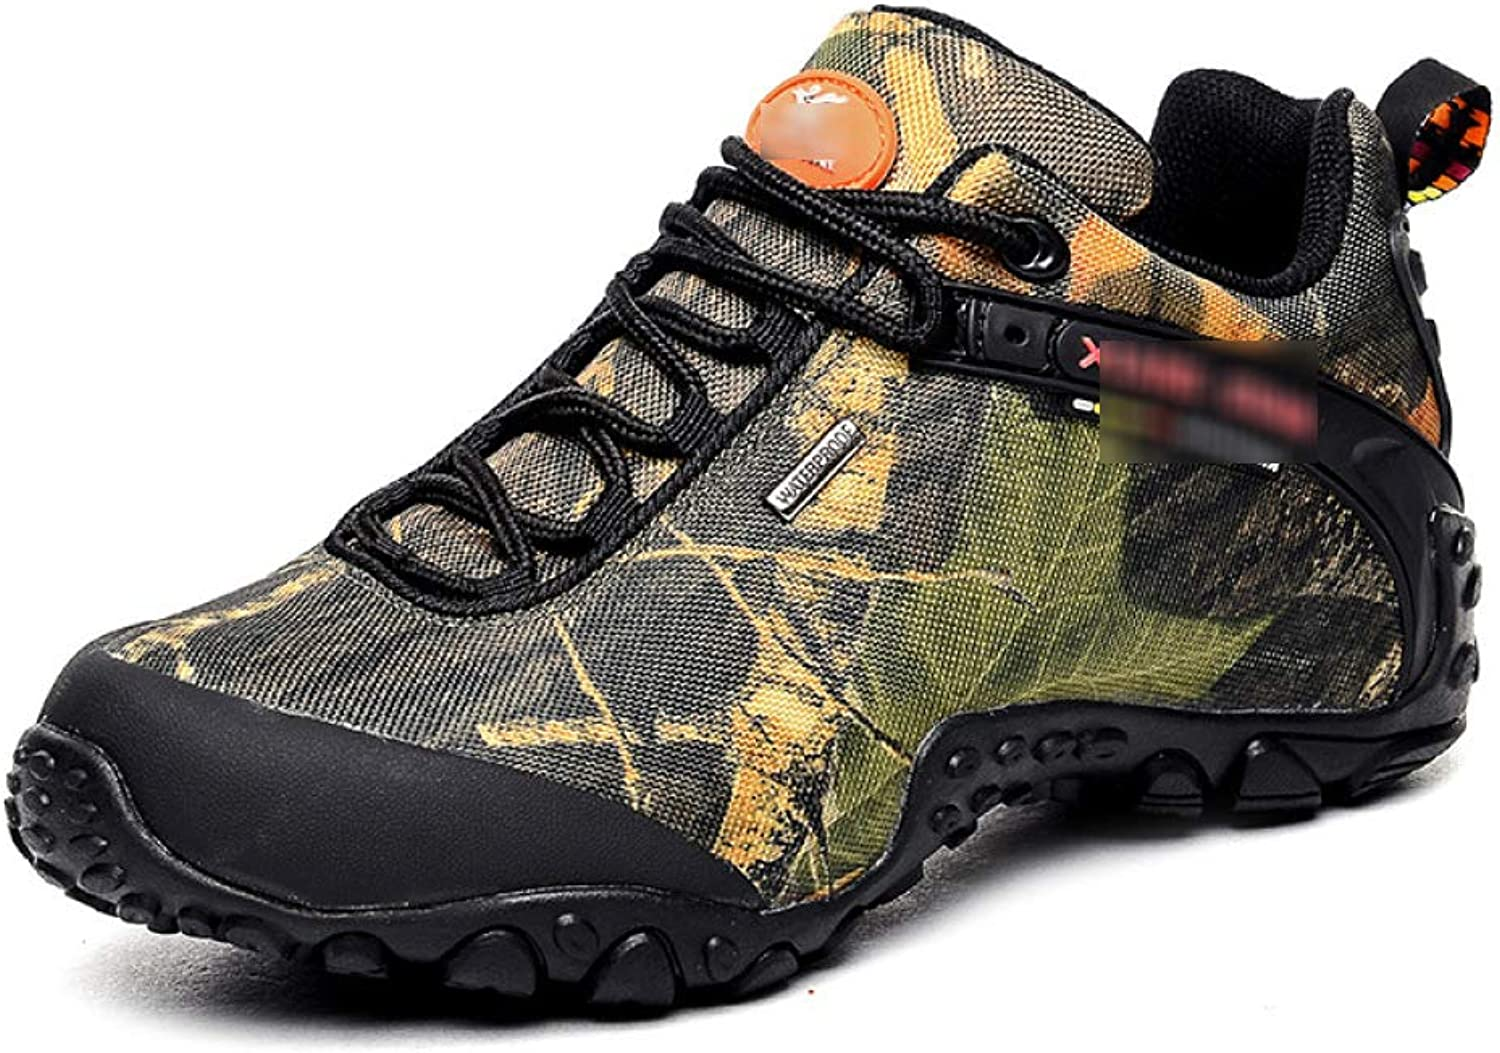 Tactical Boots Spring And Autumn Low Help Camouflage Outdoor Mountaineering Military Boots Hiking Wear Couple shoes